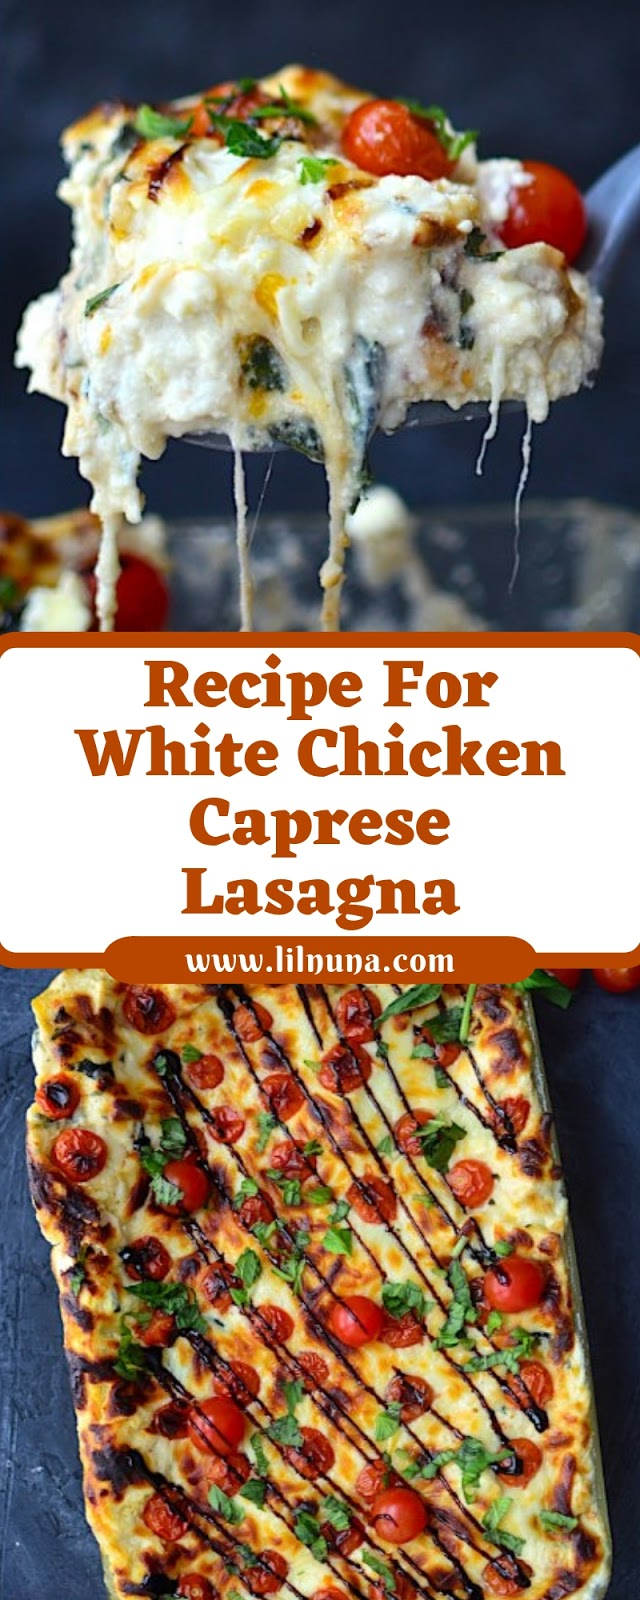 Recipe For White Chicken Caprese Lasagna